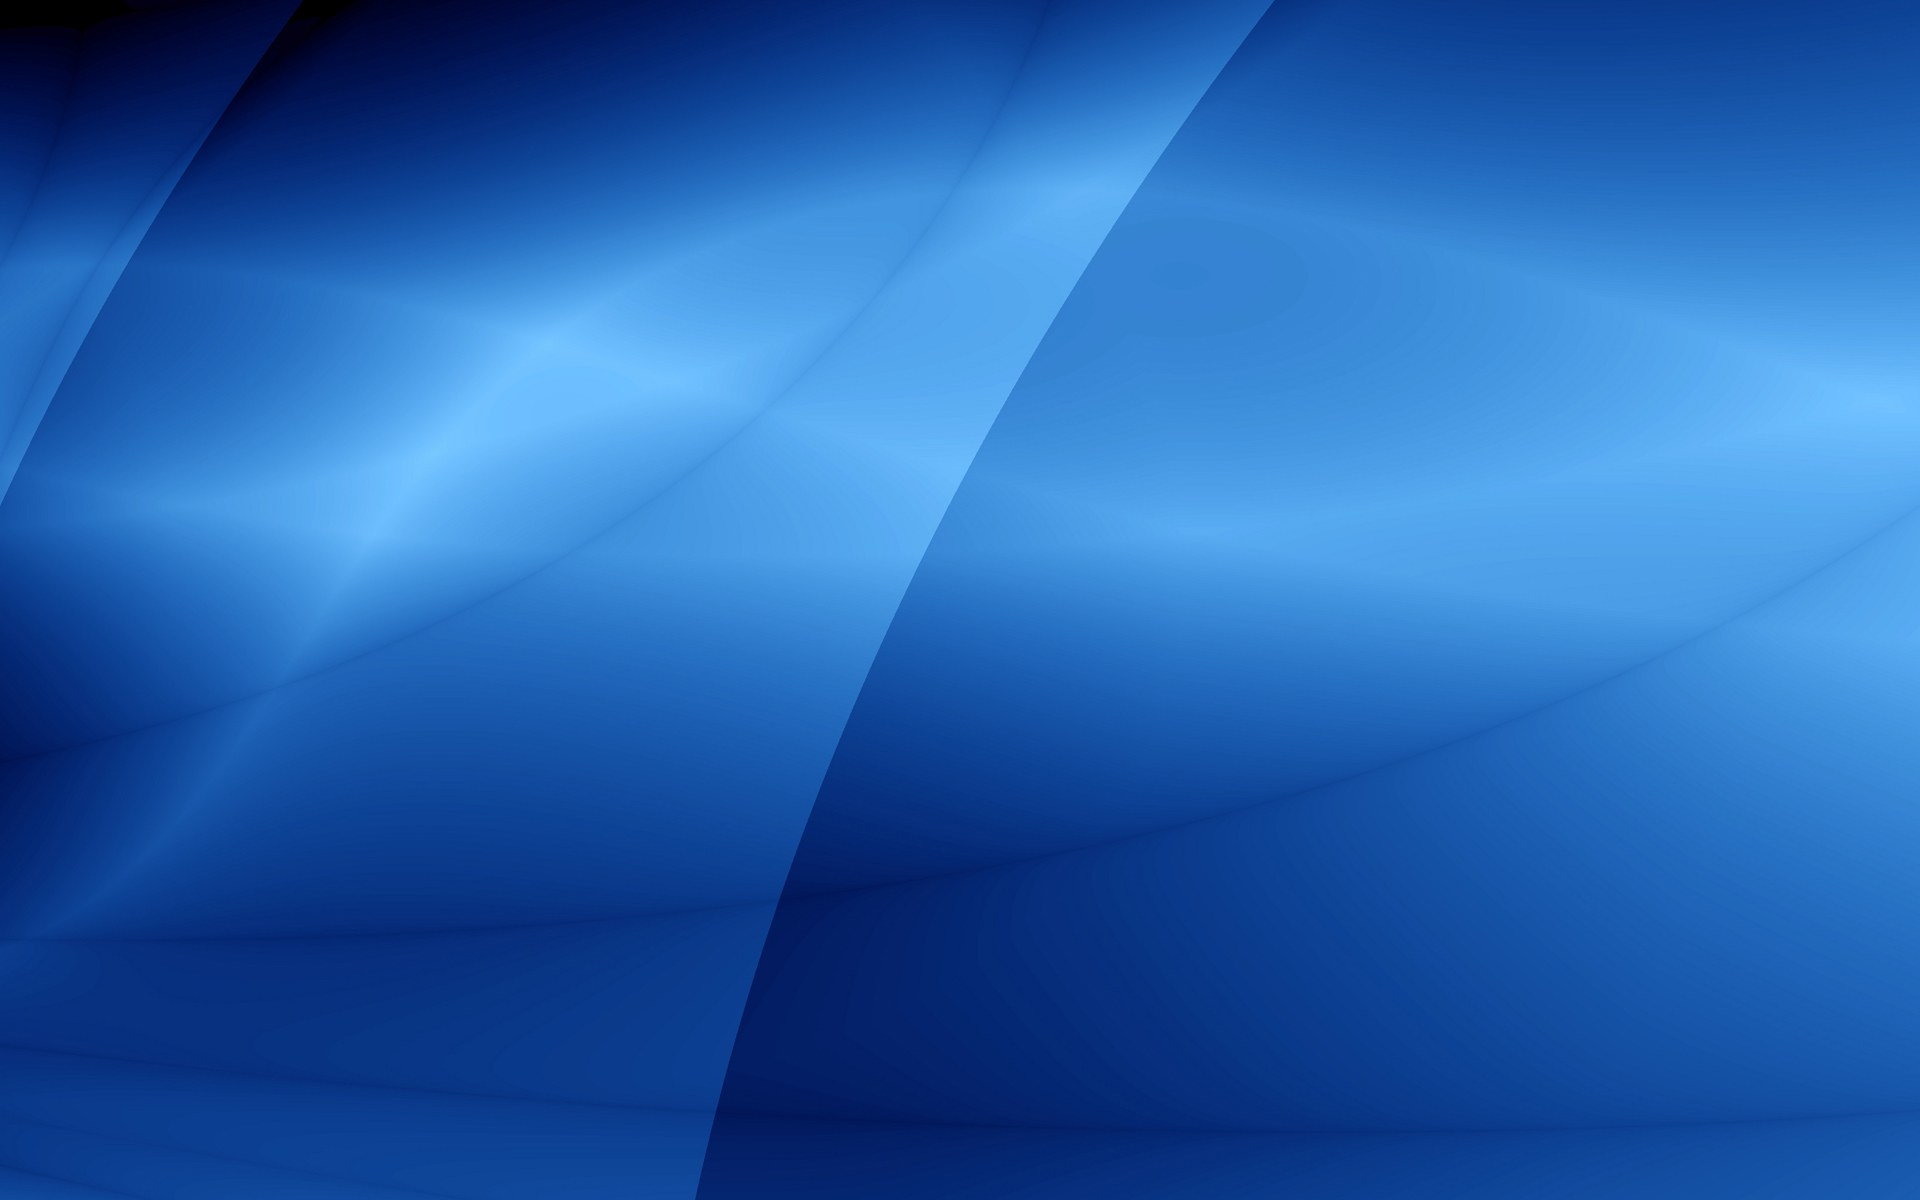 HD Abstract Blue Background Background Images Blue Hd